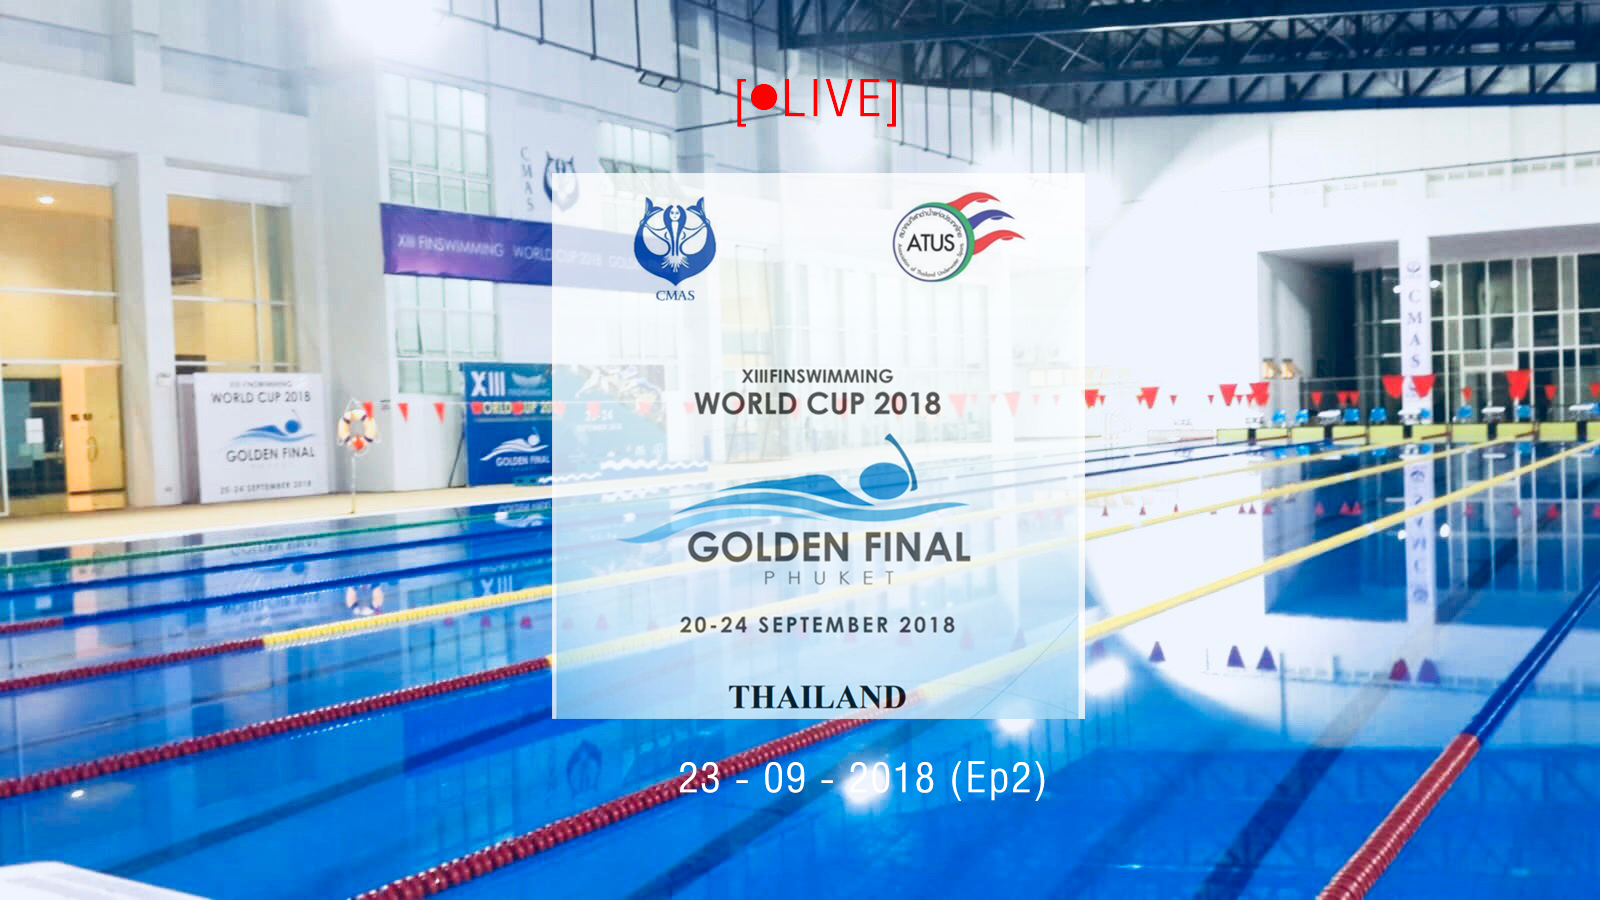 XIII FINSWIMMING WORLD CUP 2018 GOLDEN FINAL day2